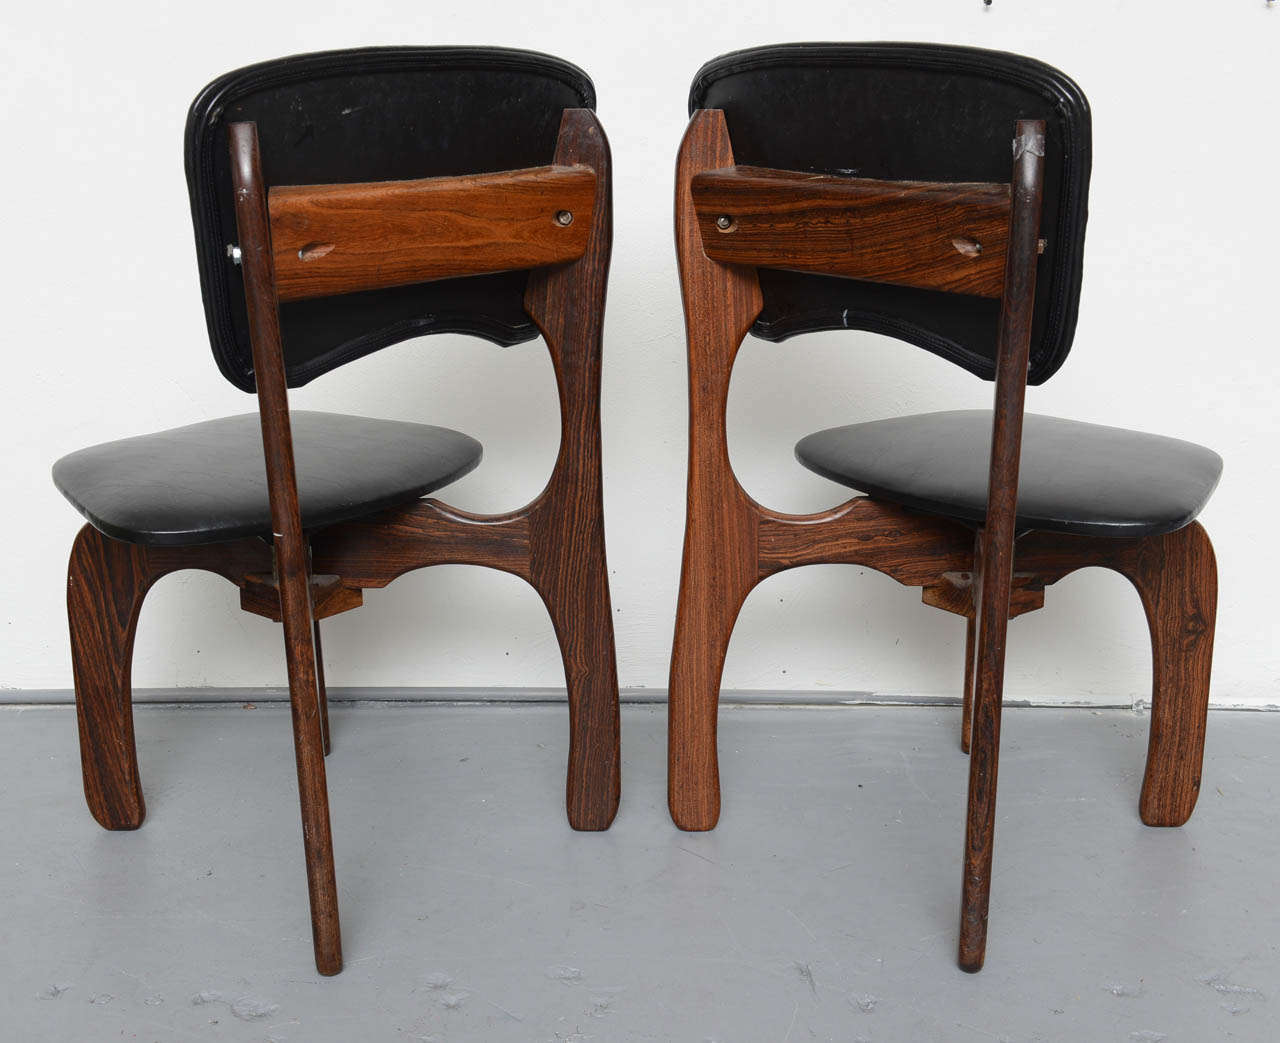 Late 20th Century 1970s Rosewood Chairs by Don Shoemaker, Mexico For Sale